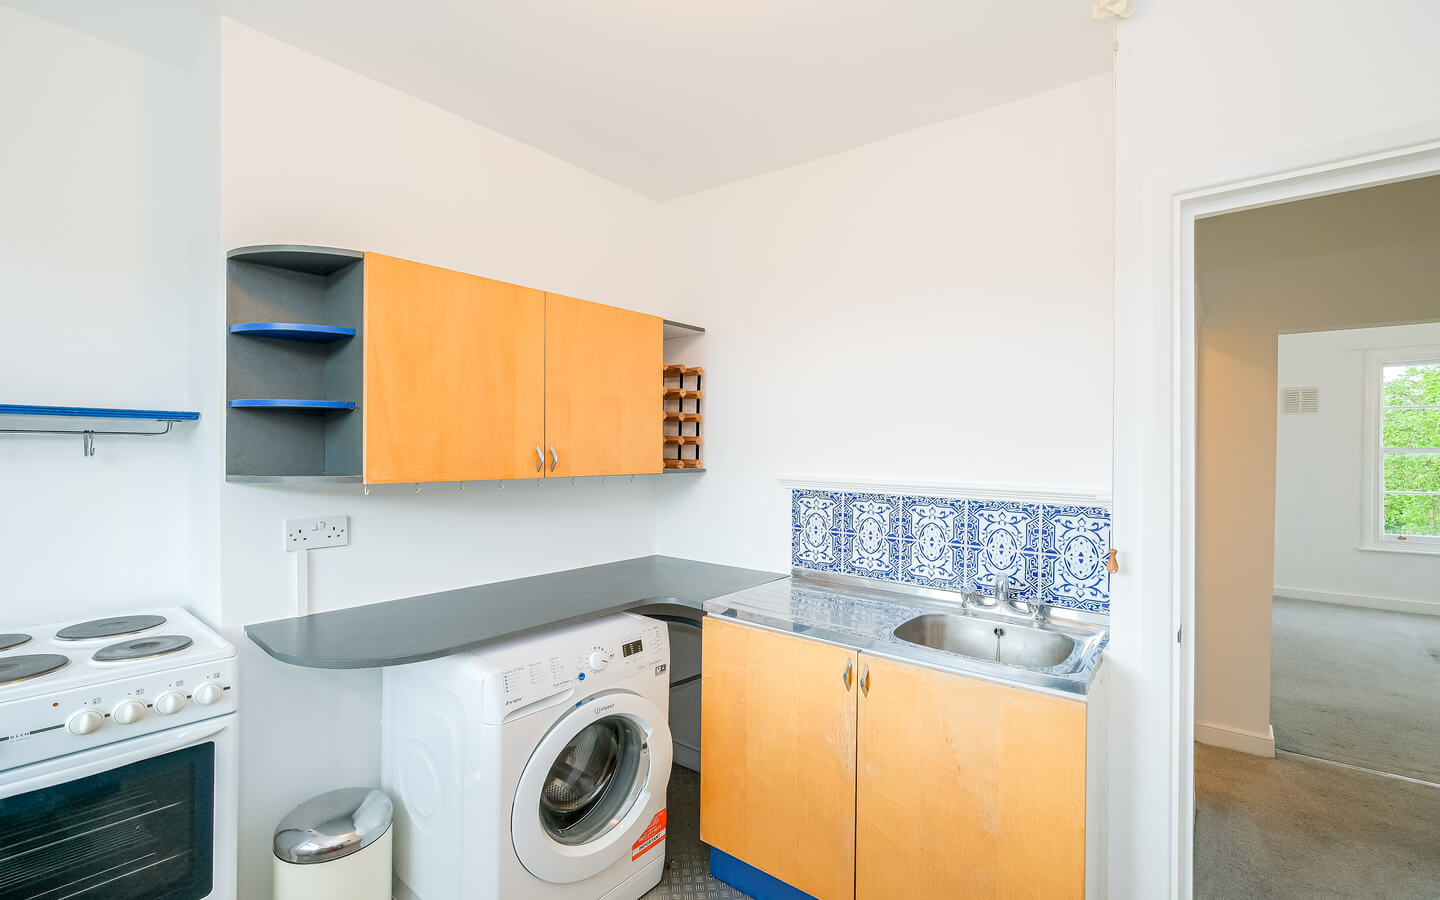 One Bedroom Flat For Rent - Hackney - London - E9 5HP